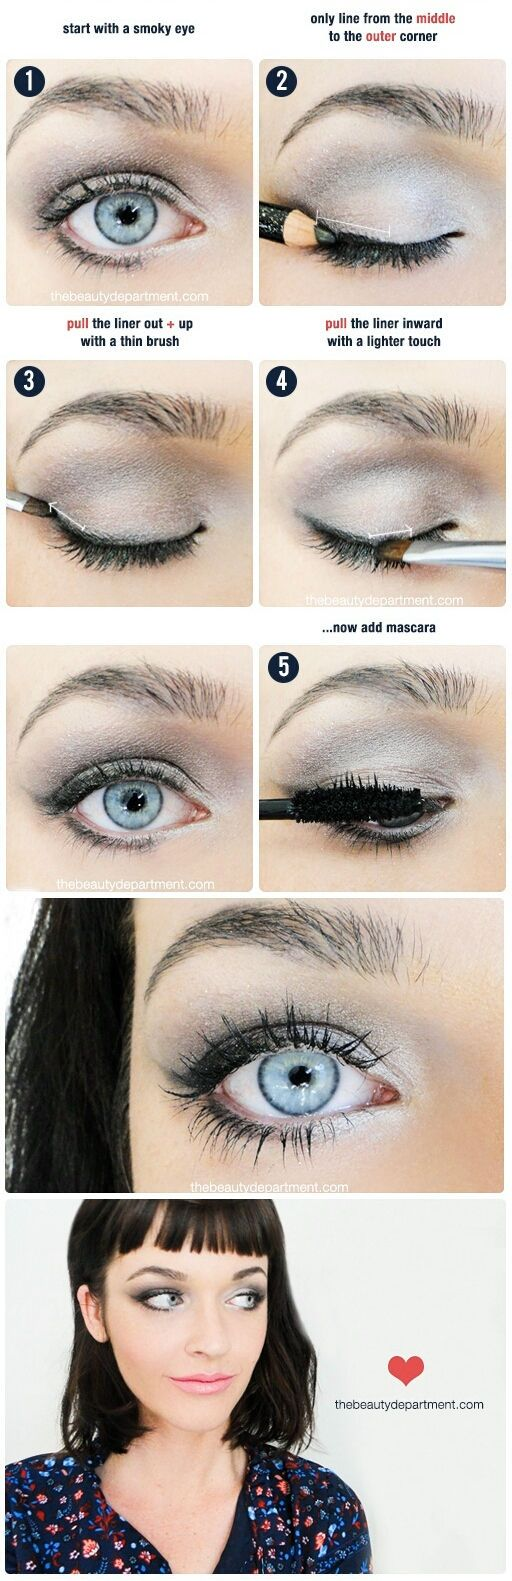 Try out this pull liner for a subtle and sultry eye look!